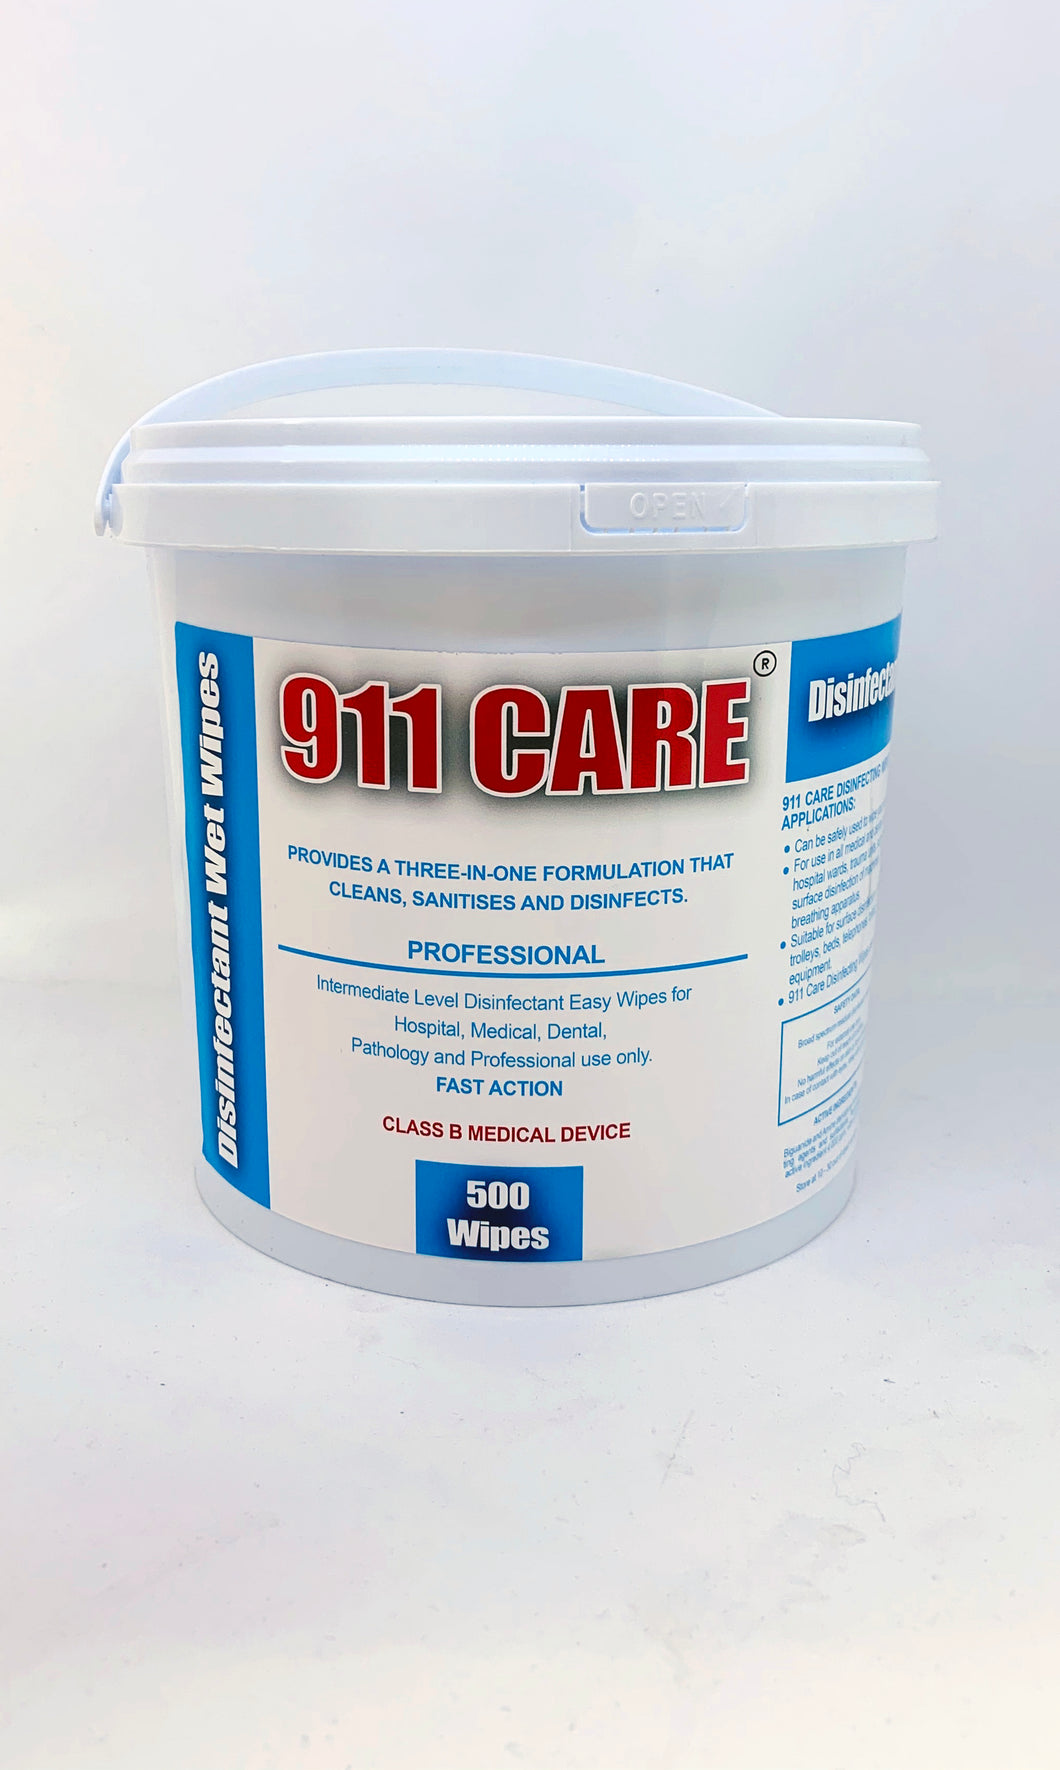 911 Care Disinfectant Wet Wipes 500's